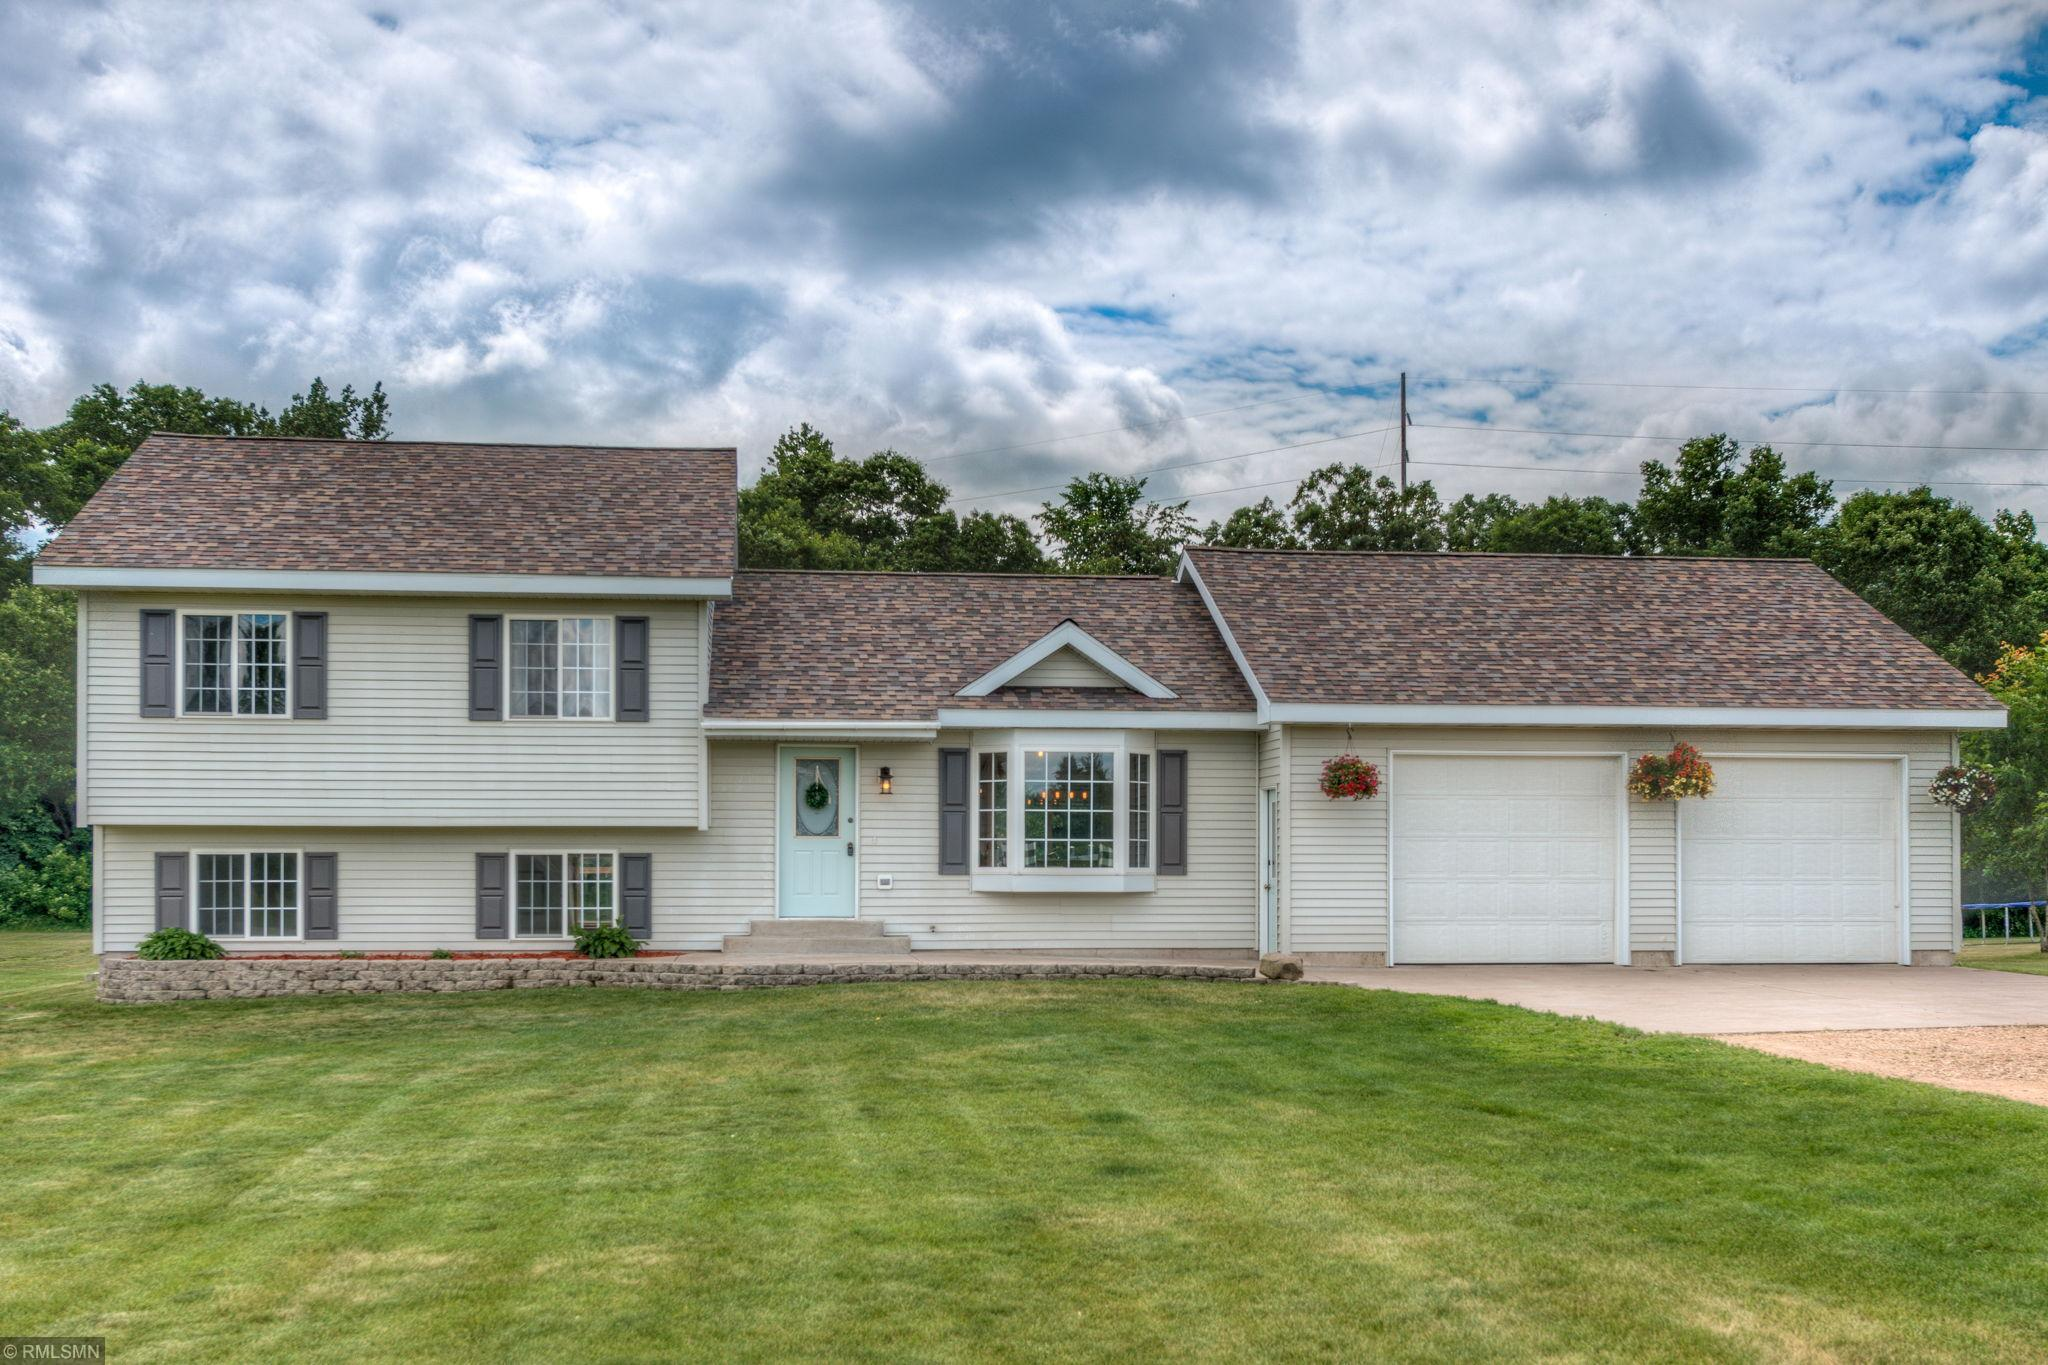 E6632 833rd Property Photo - Tainter Twp, WI real estate listing